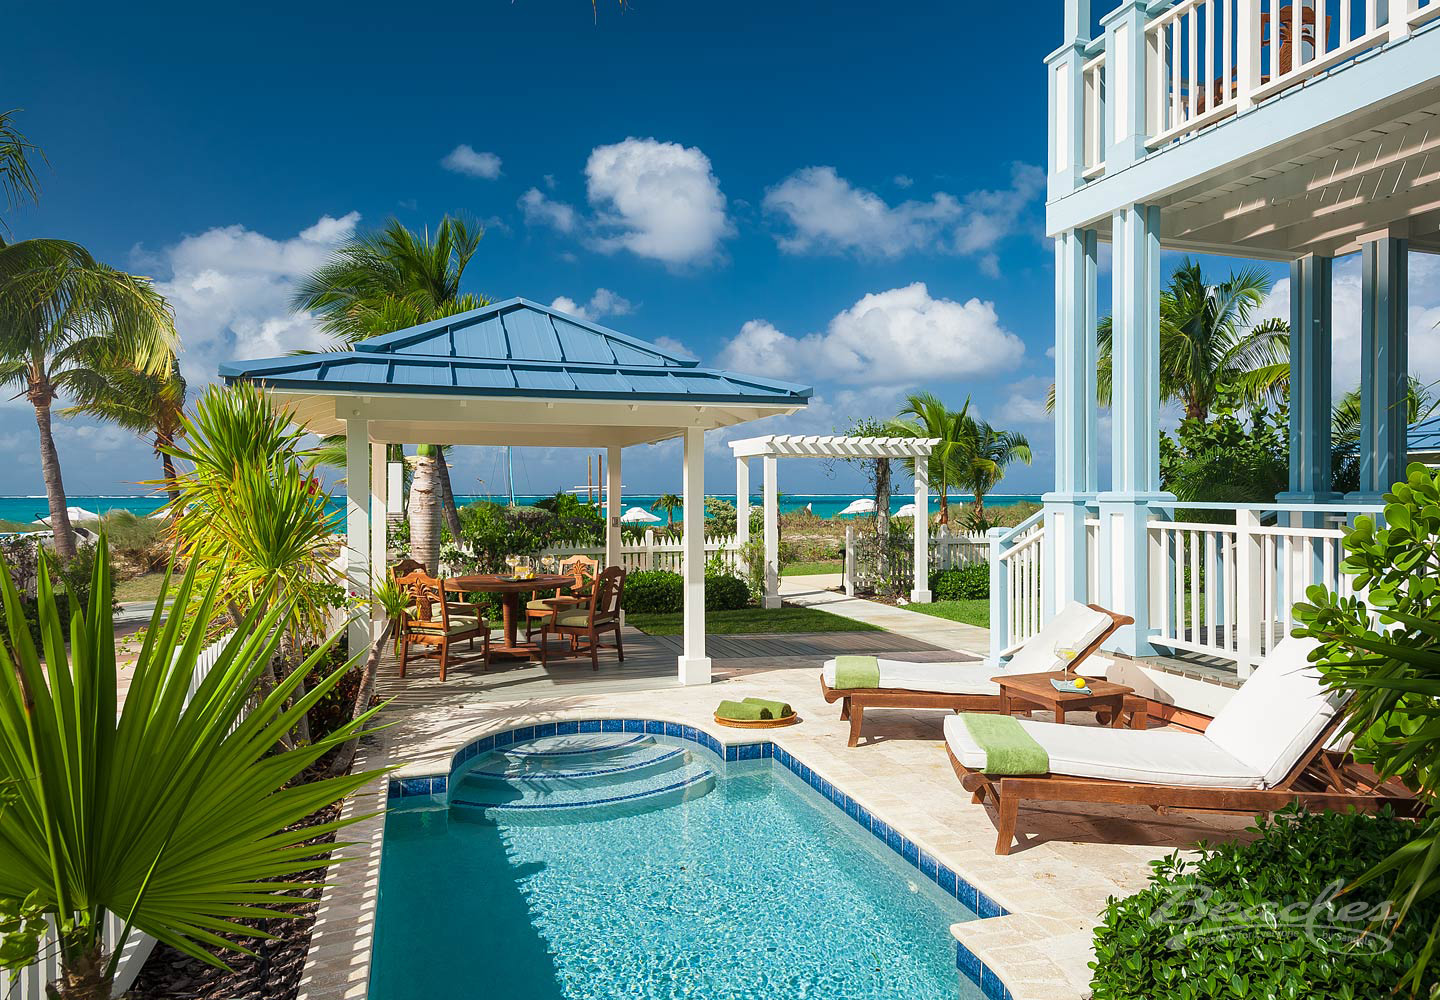 Travel Agency All-Inclusive Resort Beaches Turks and Caicos 115